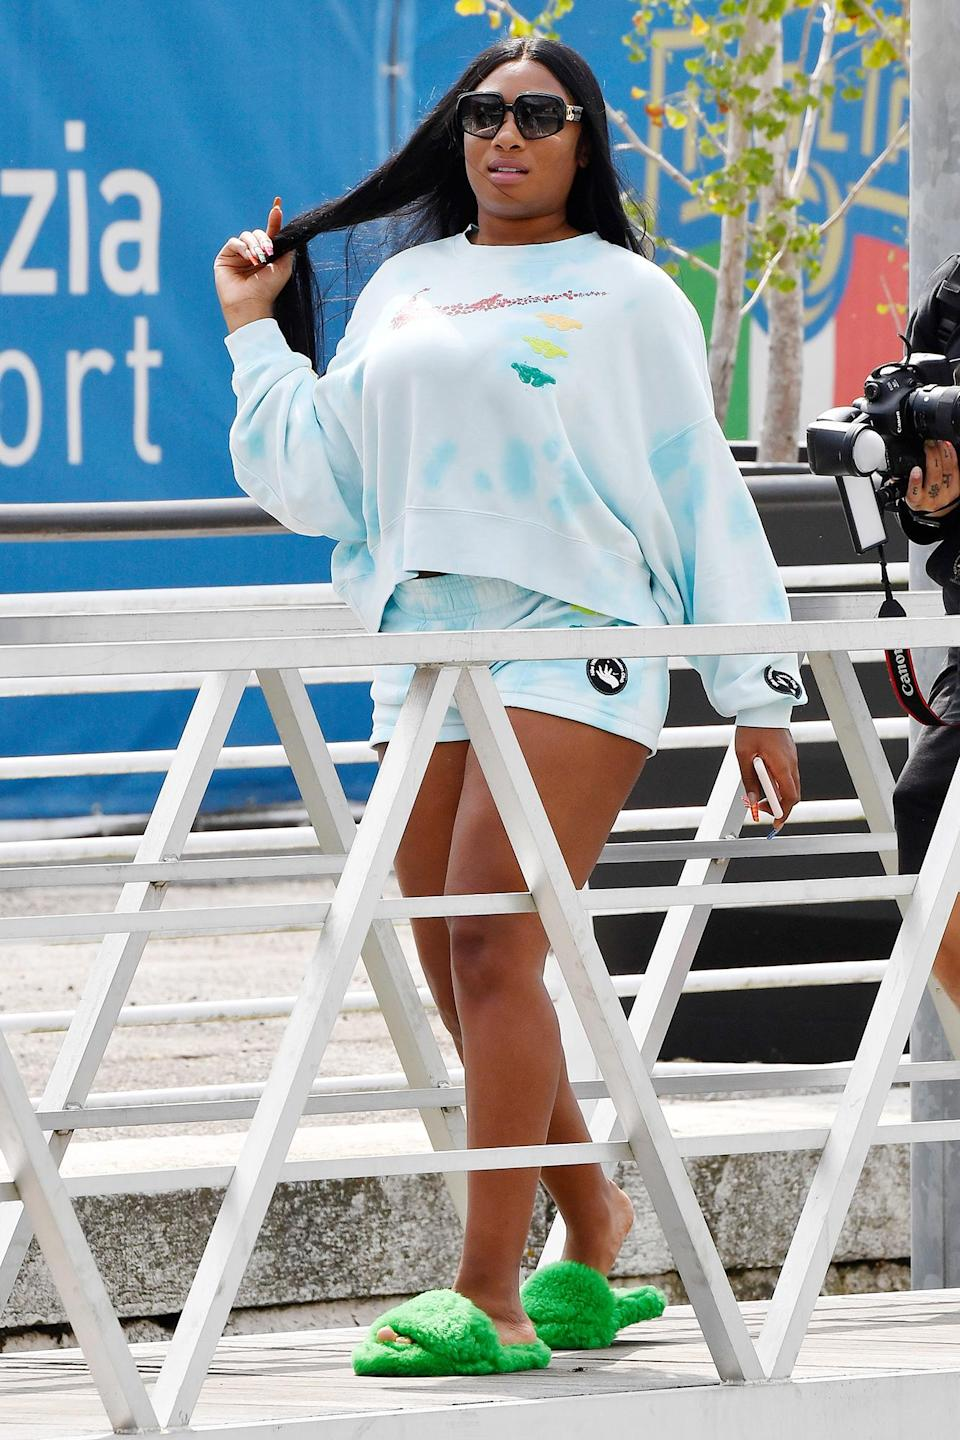 <p>Megan Thee Stallion is seen arriving at the Venice airport after the Dolce & Gabbana fashion show on Aug. 31. </p>